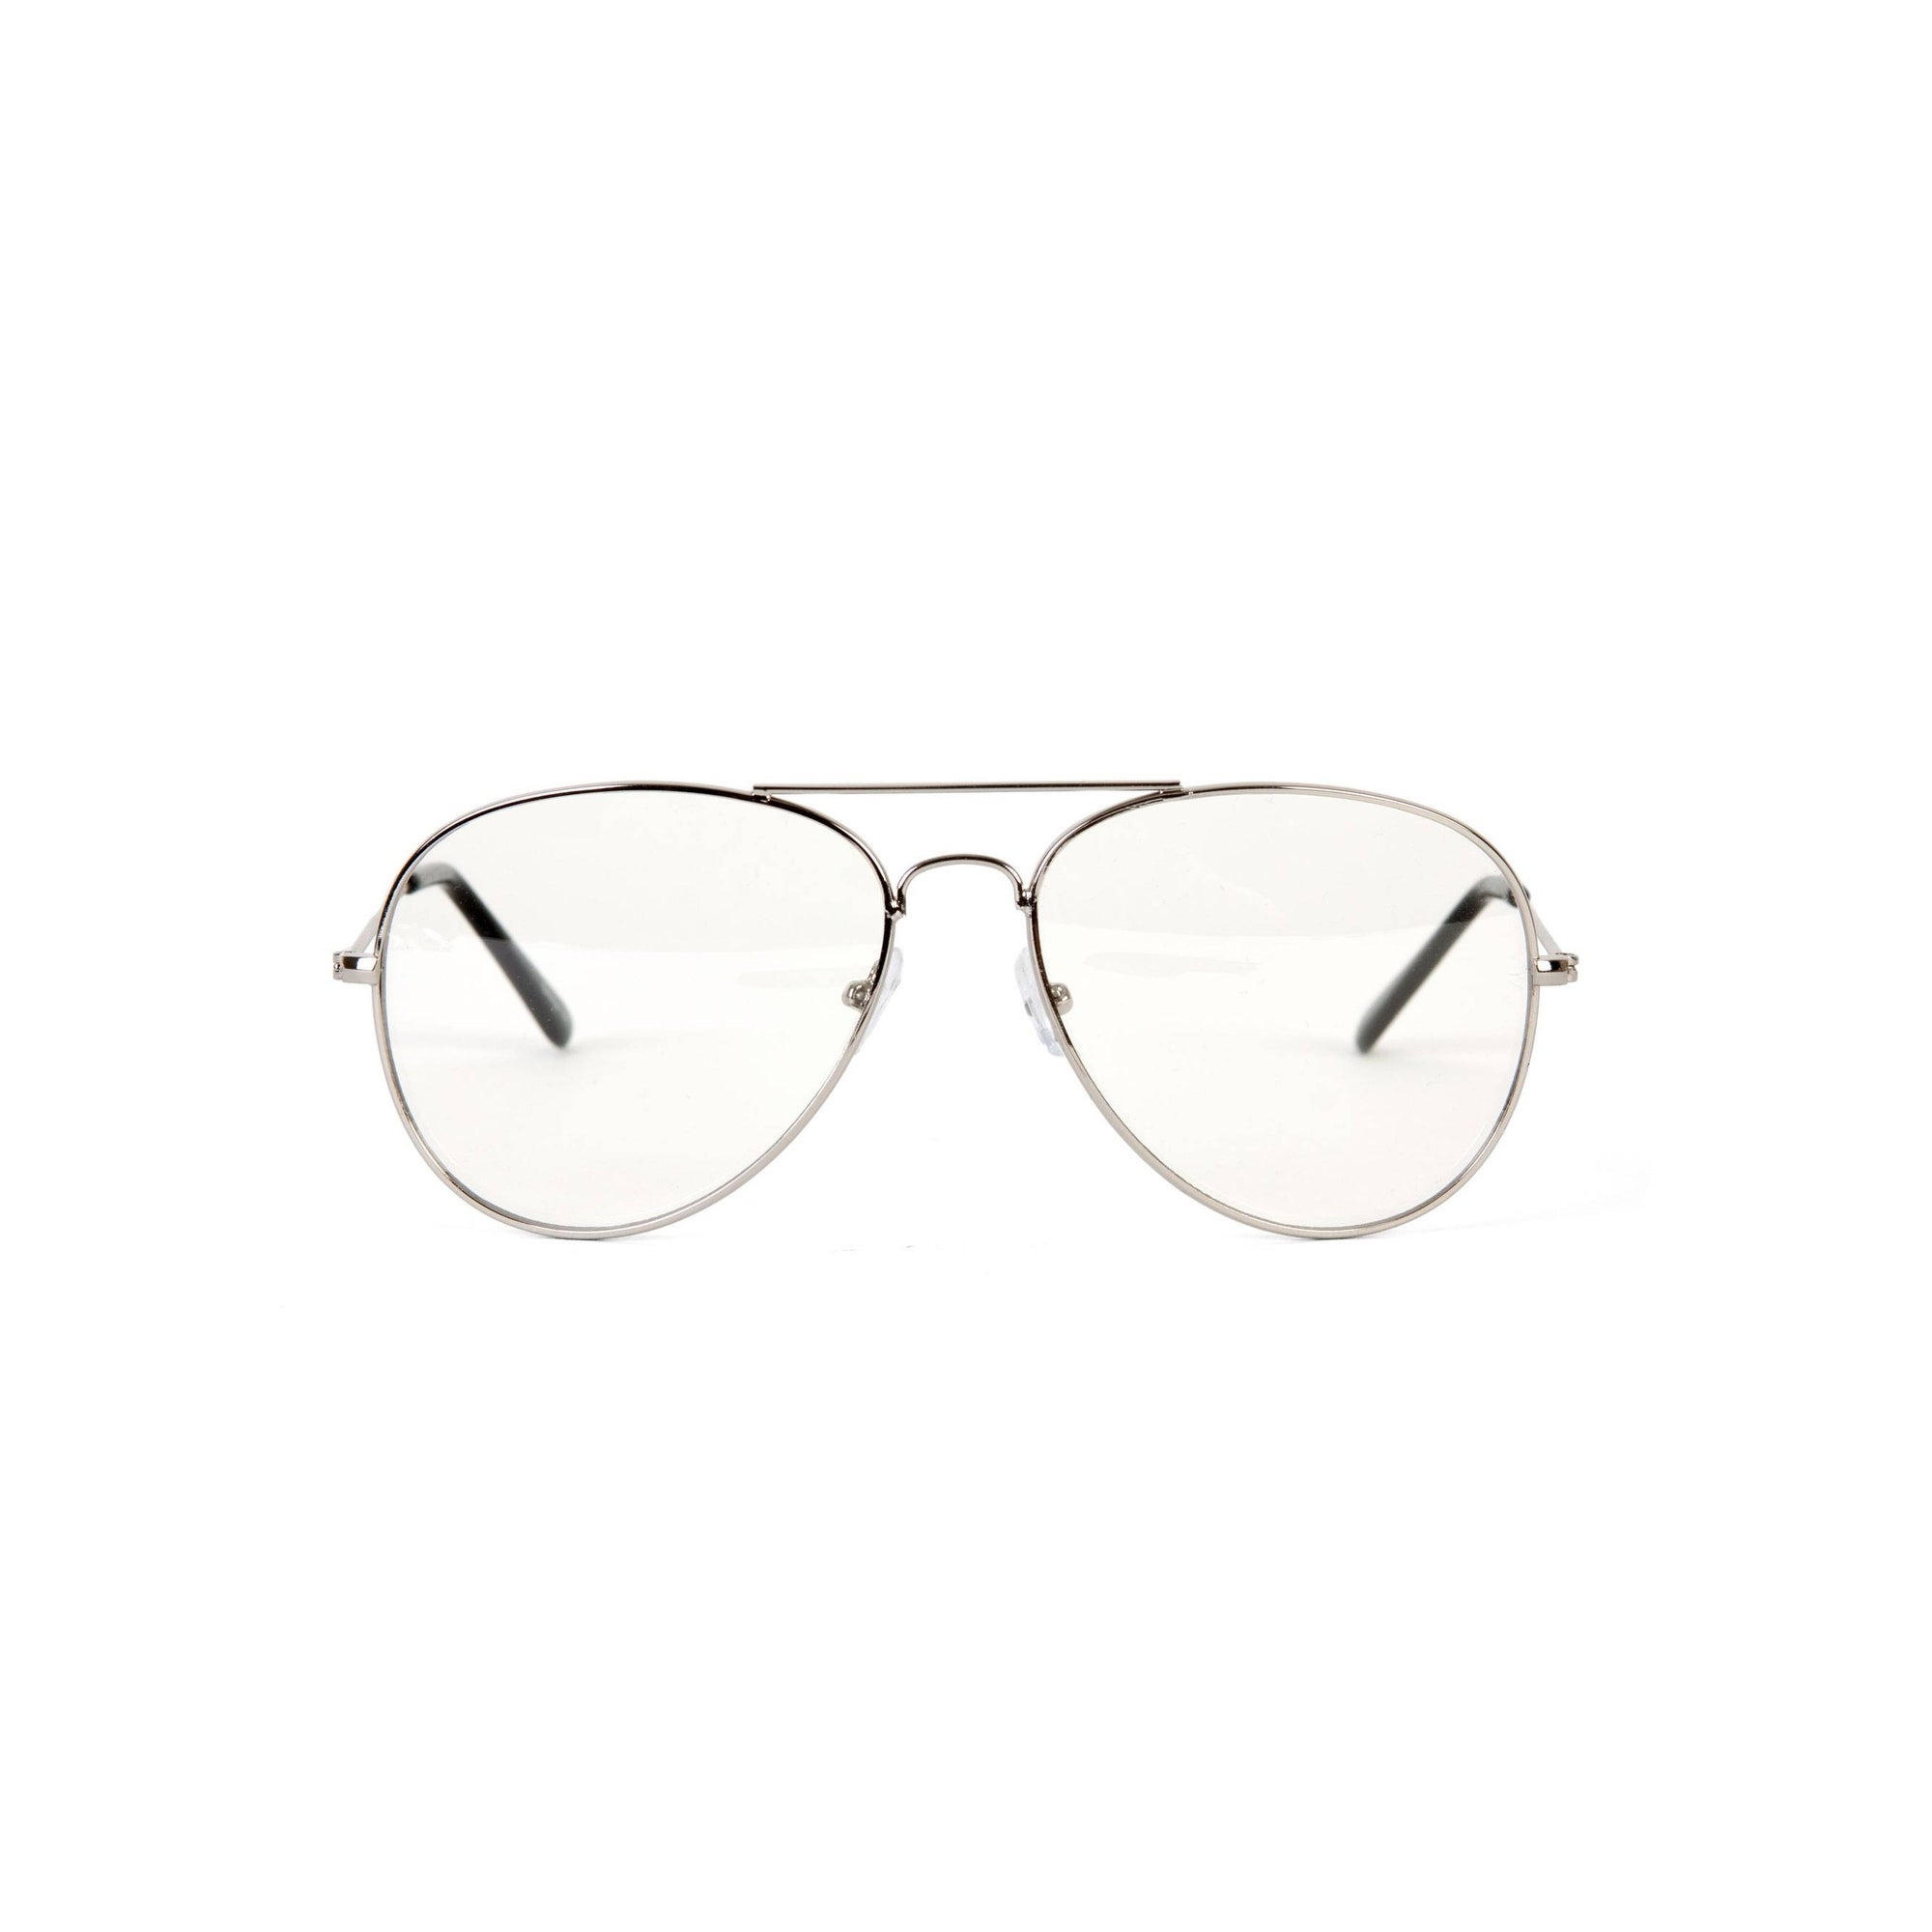 shop gravity shades clear lens aviator sunglass silver 12 pack Ray-Ban Aviators Size Guide shop gravity shades clear lens aviator sunglass silver 12 pack one size free shipping on orders over 45 overstock 16965482